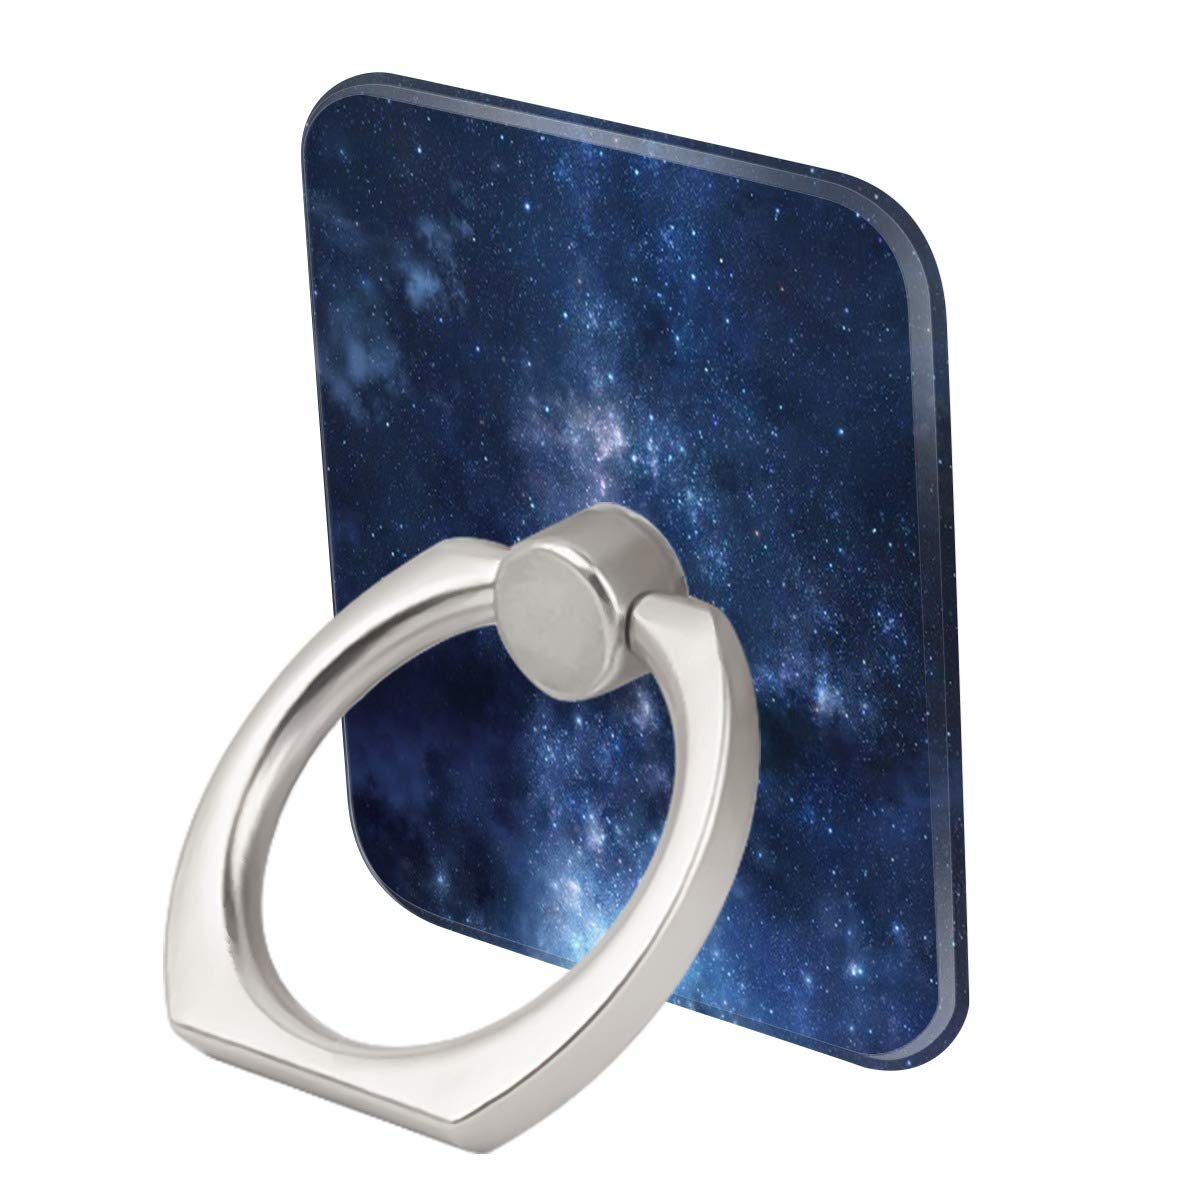 Galaxy Ring Phone Holder Stand Mounts for iPhone iPad, Samsung Other Smartphones